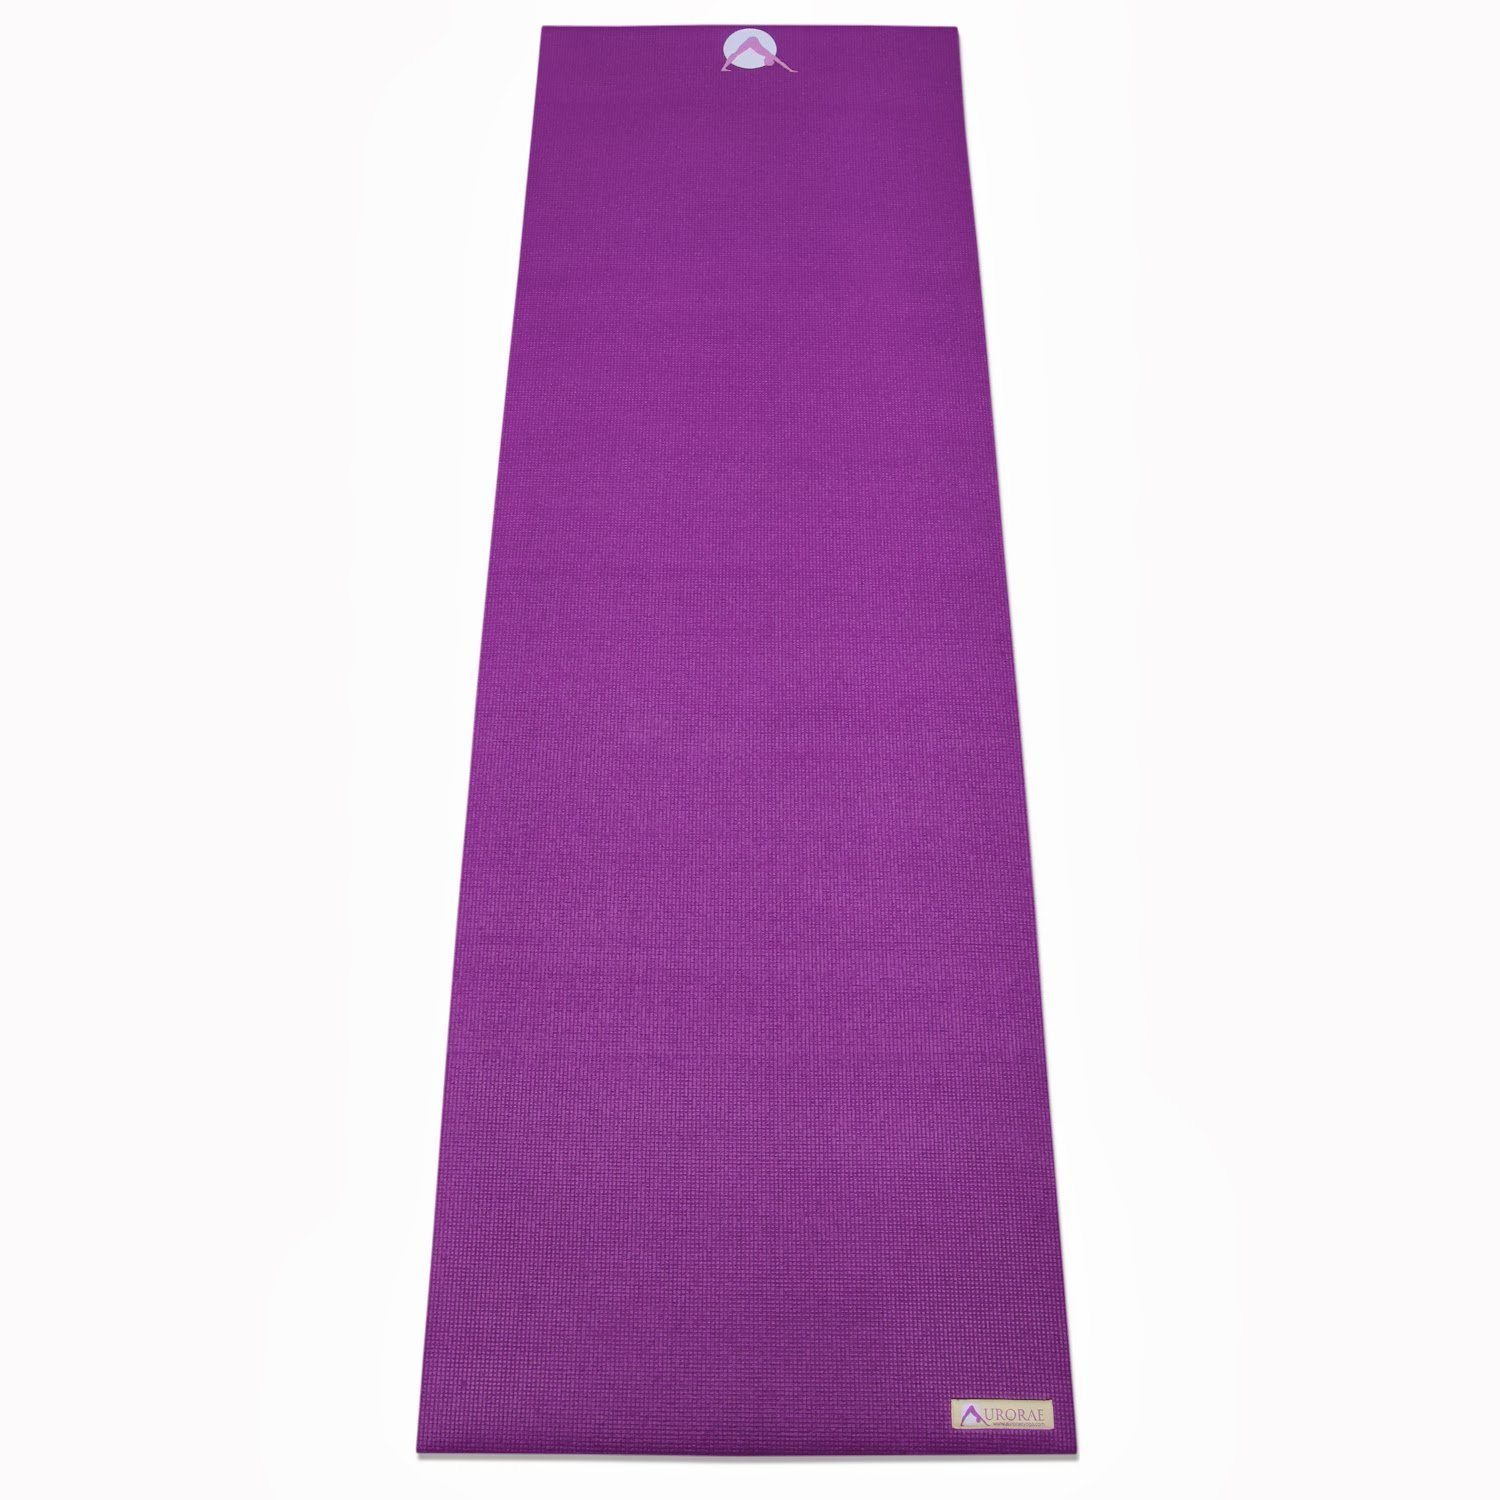 Aurorae Classic Thick 6mm Yoga Mat with Non-Slip Rosin